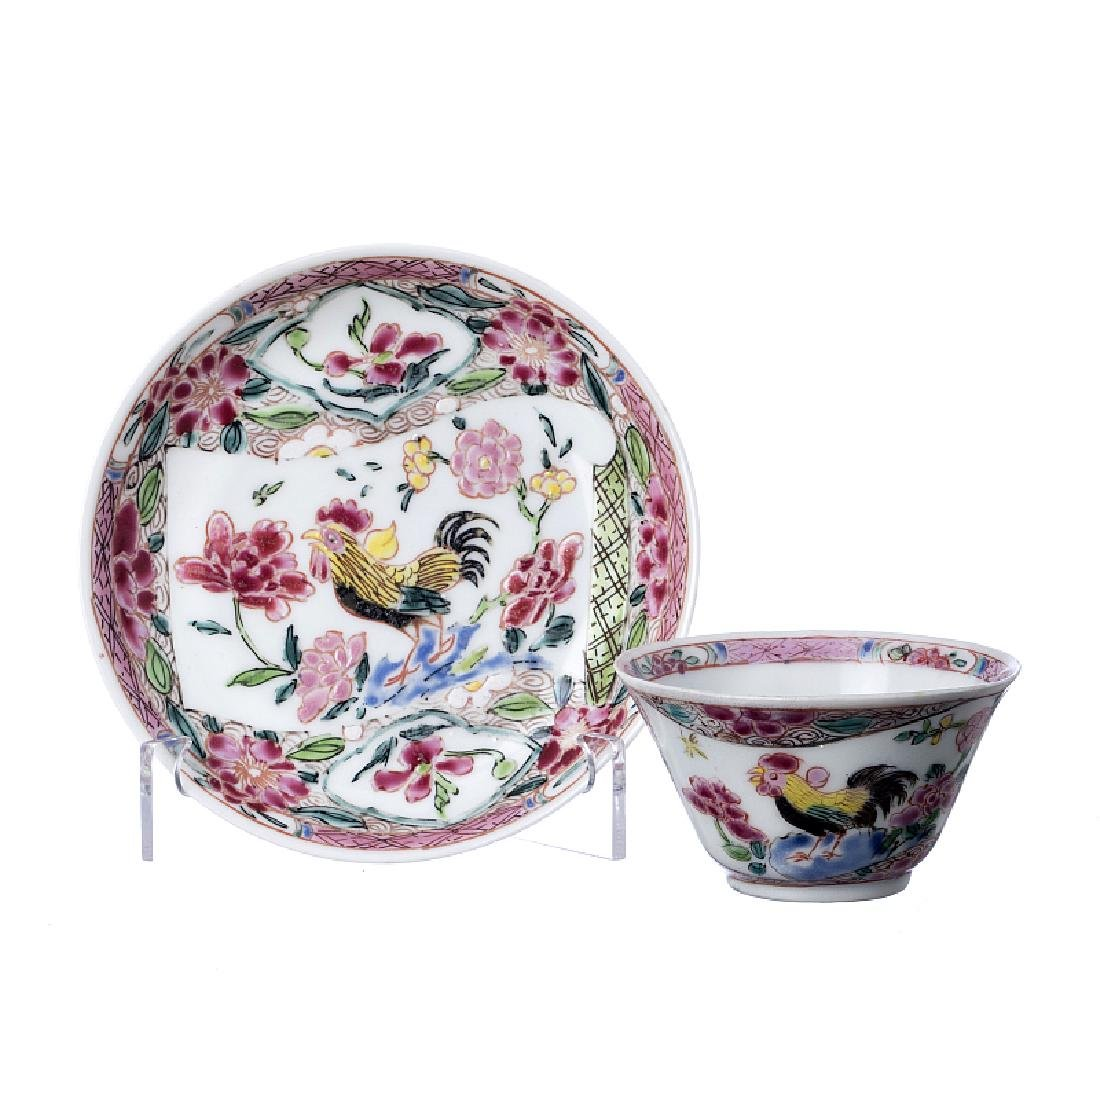 Rooster teacup and saucer in Chinese porcelain,